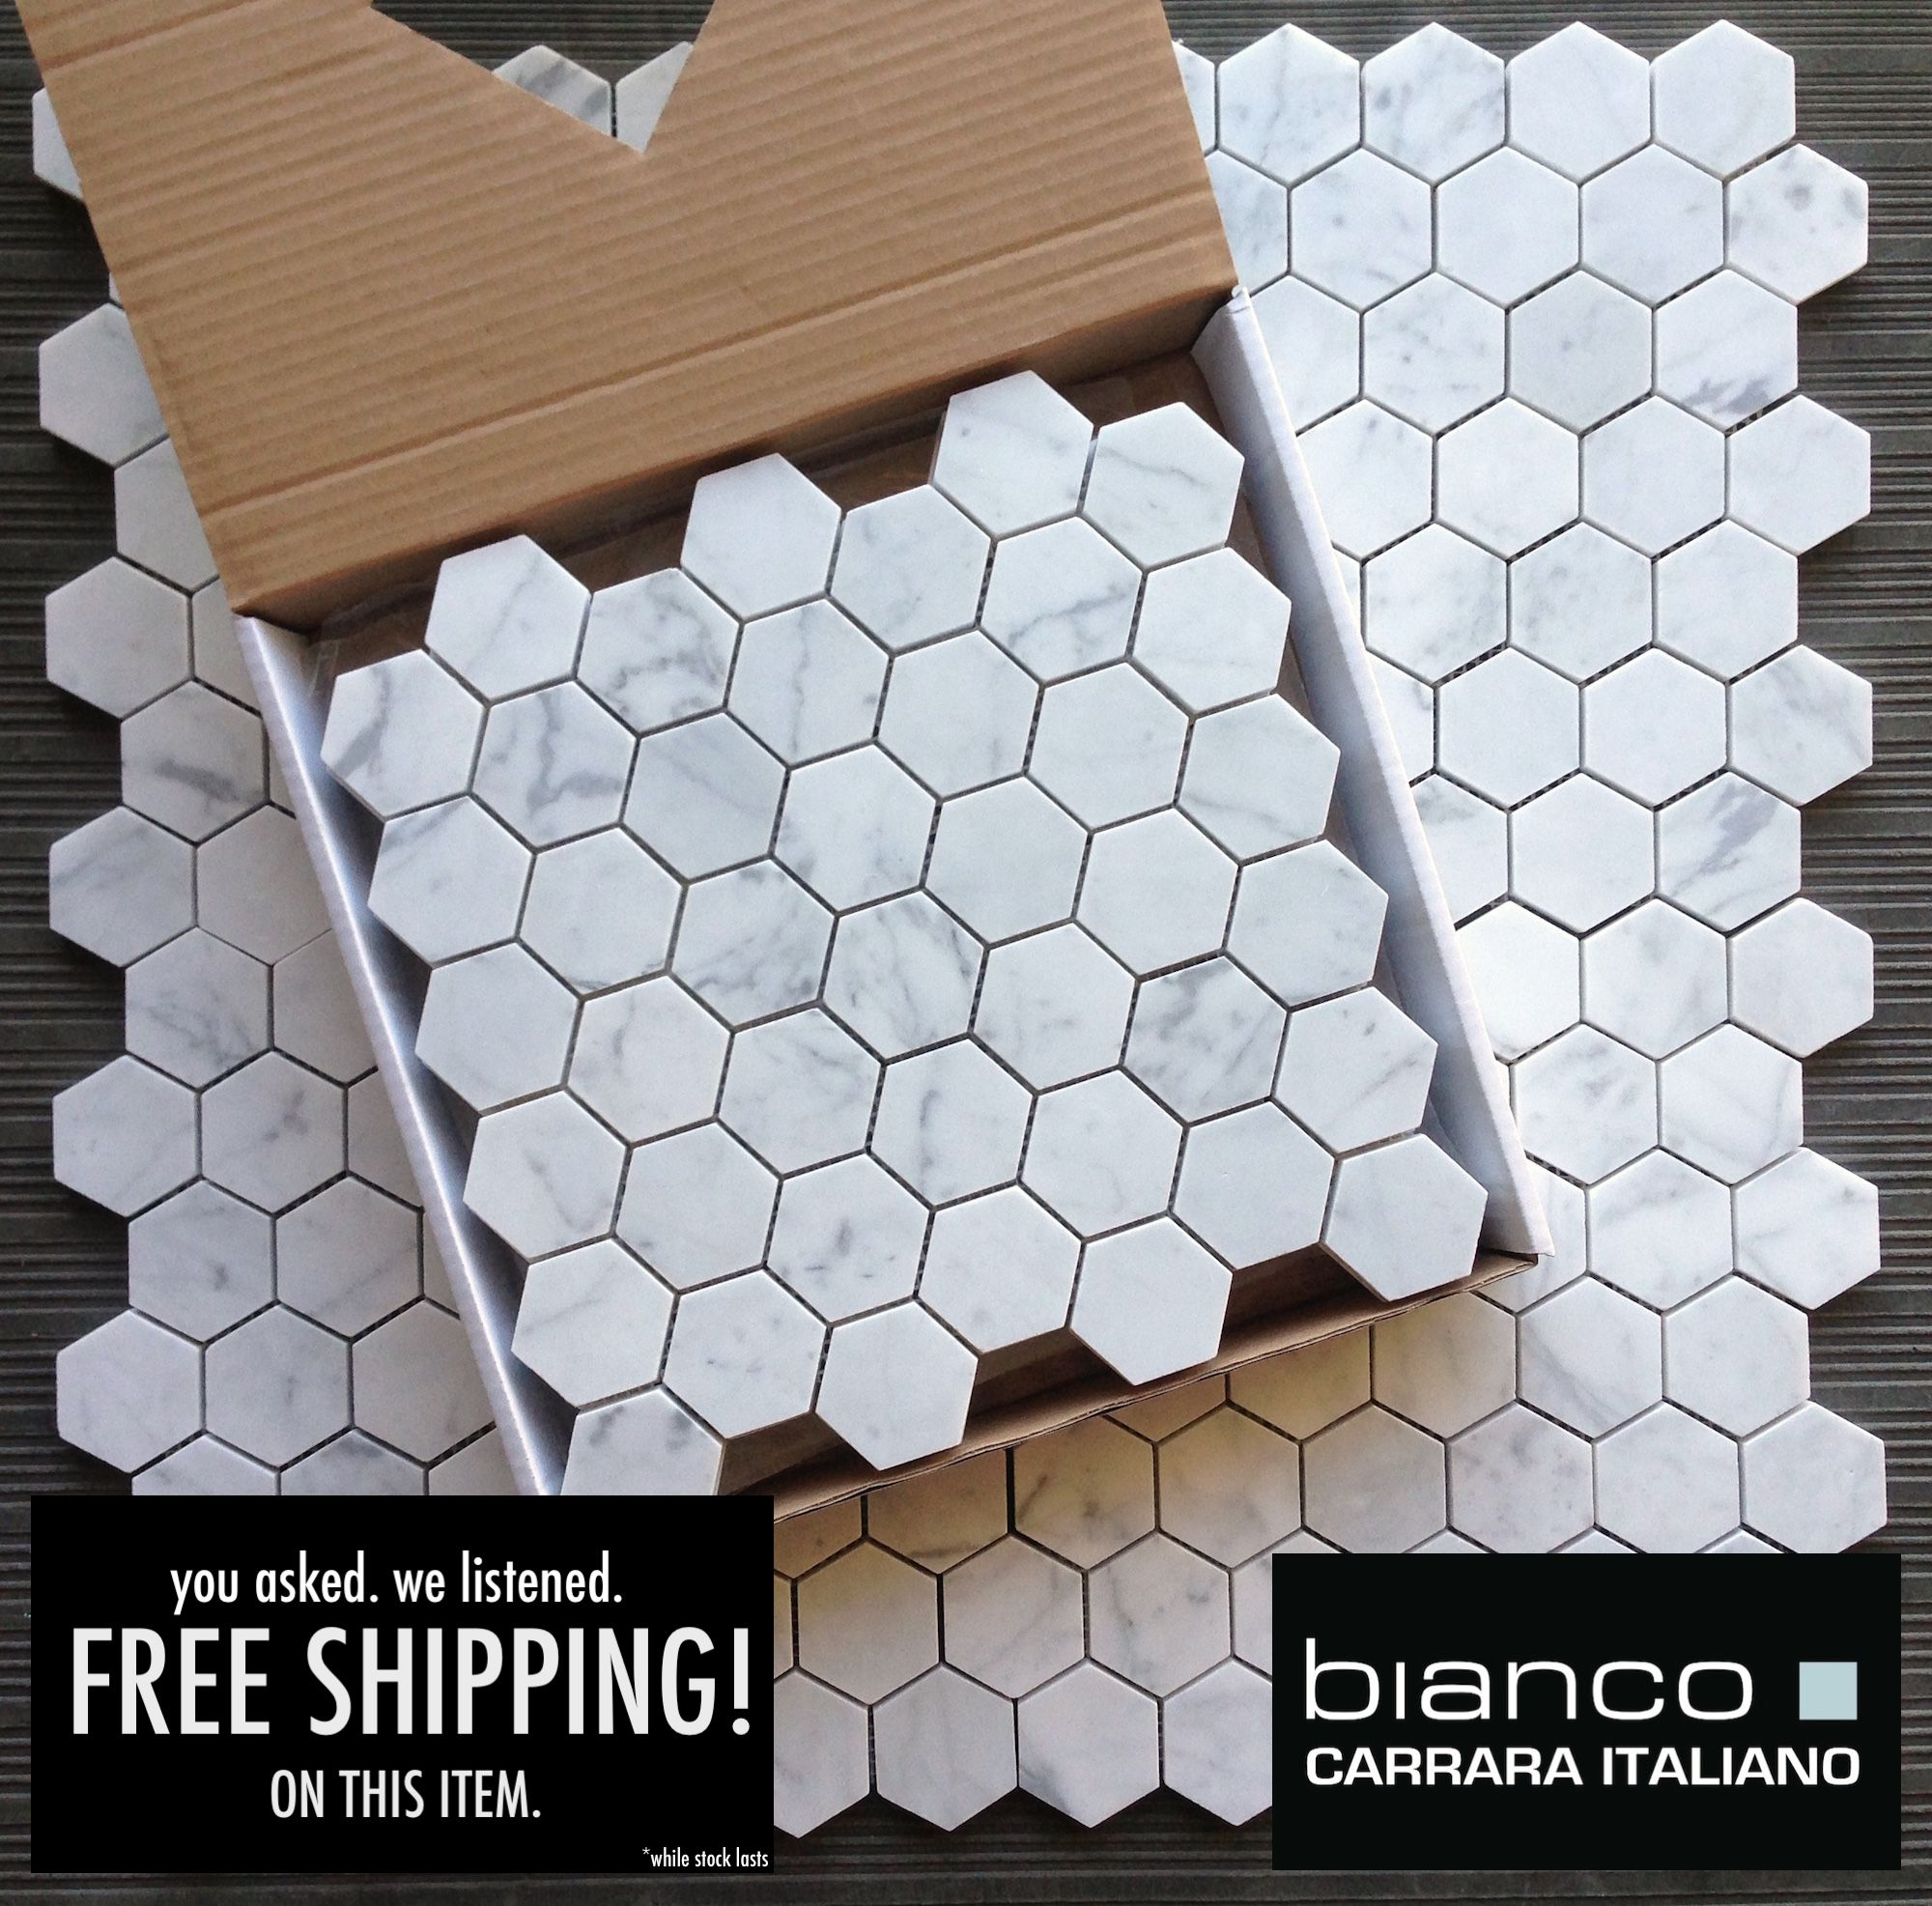 11 25 A Square Foot And Free Shipping Carrara Bianco 2 Hexagon Marble Mosaic Tile